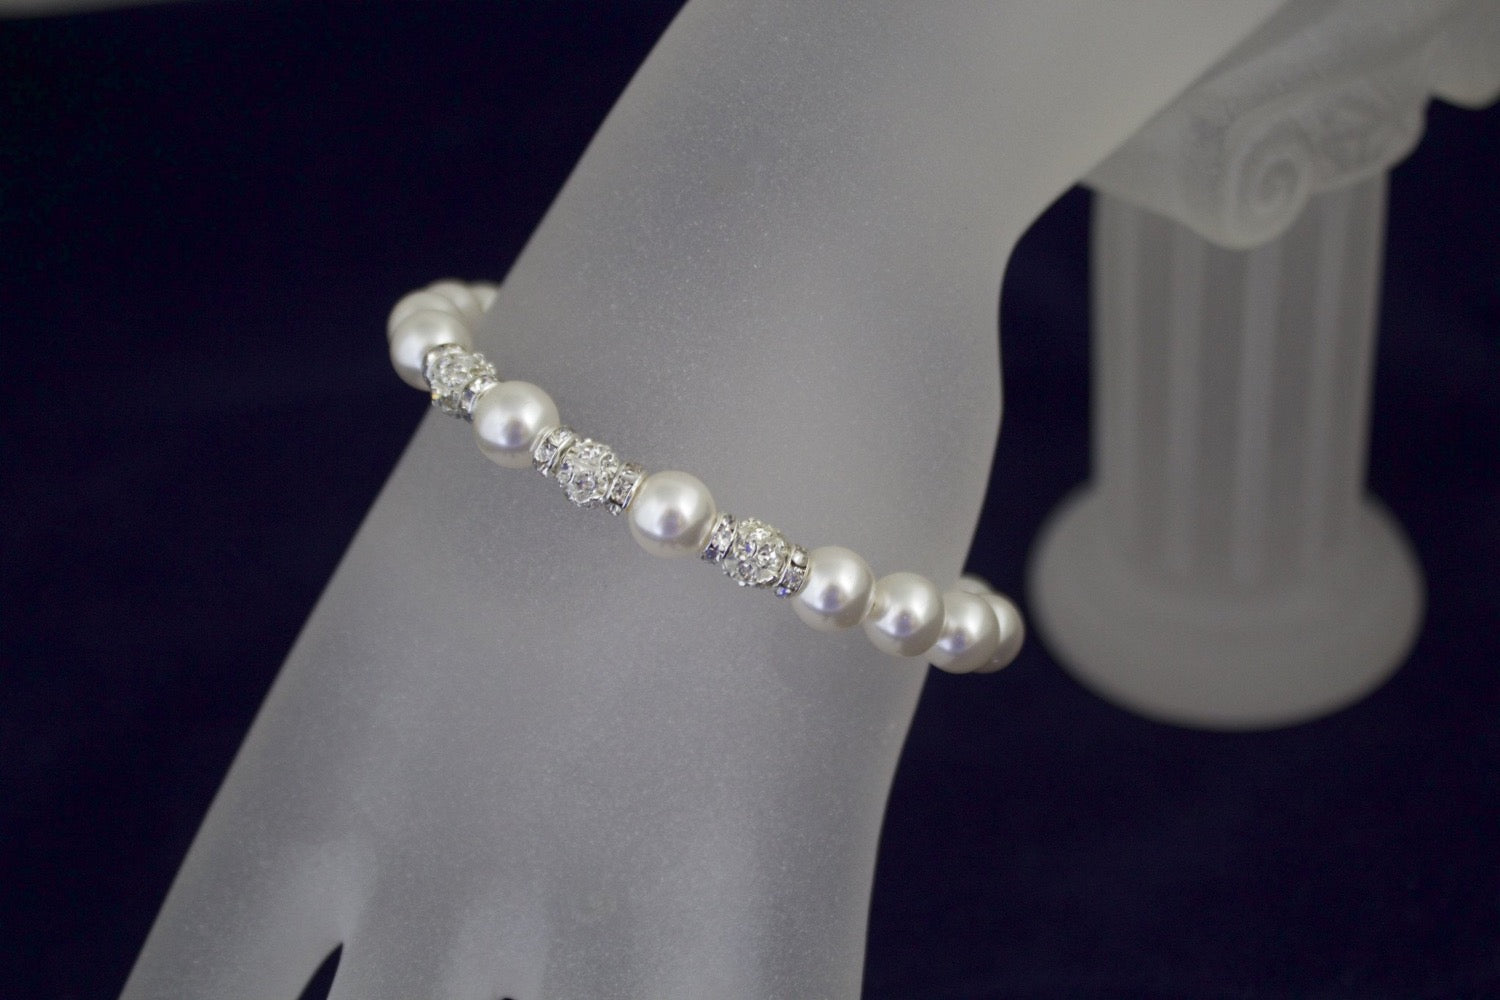 Bridal Jewelry Wedding Pearl Bracelet and Earring Set - Clairesbridal - 2